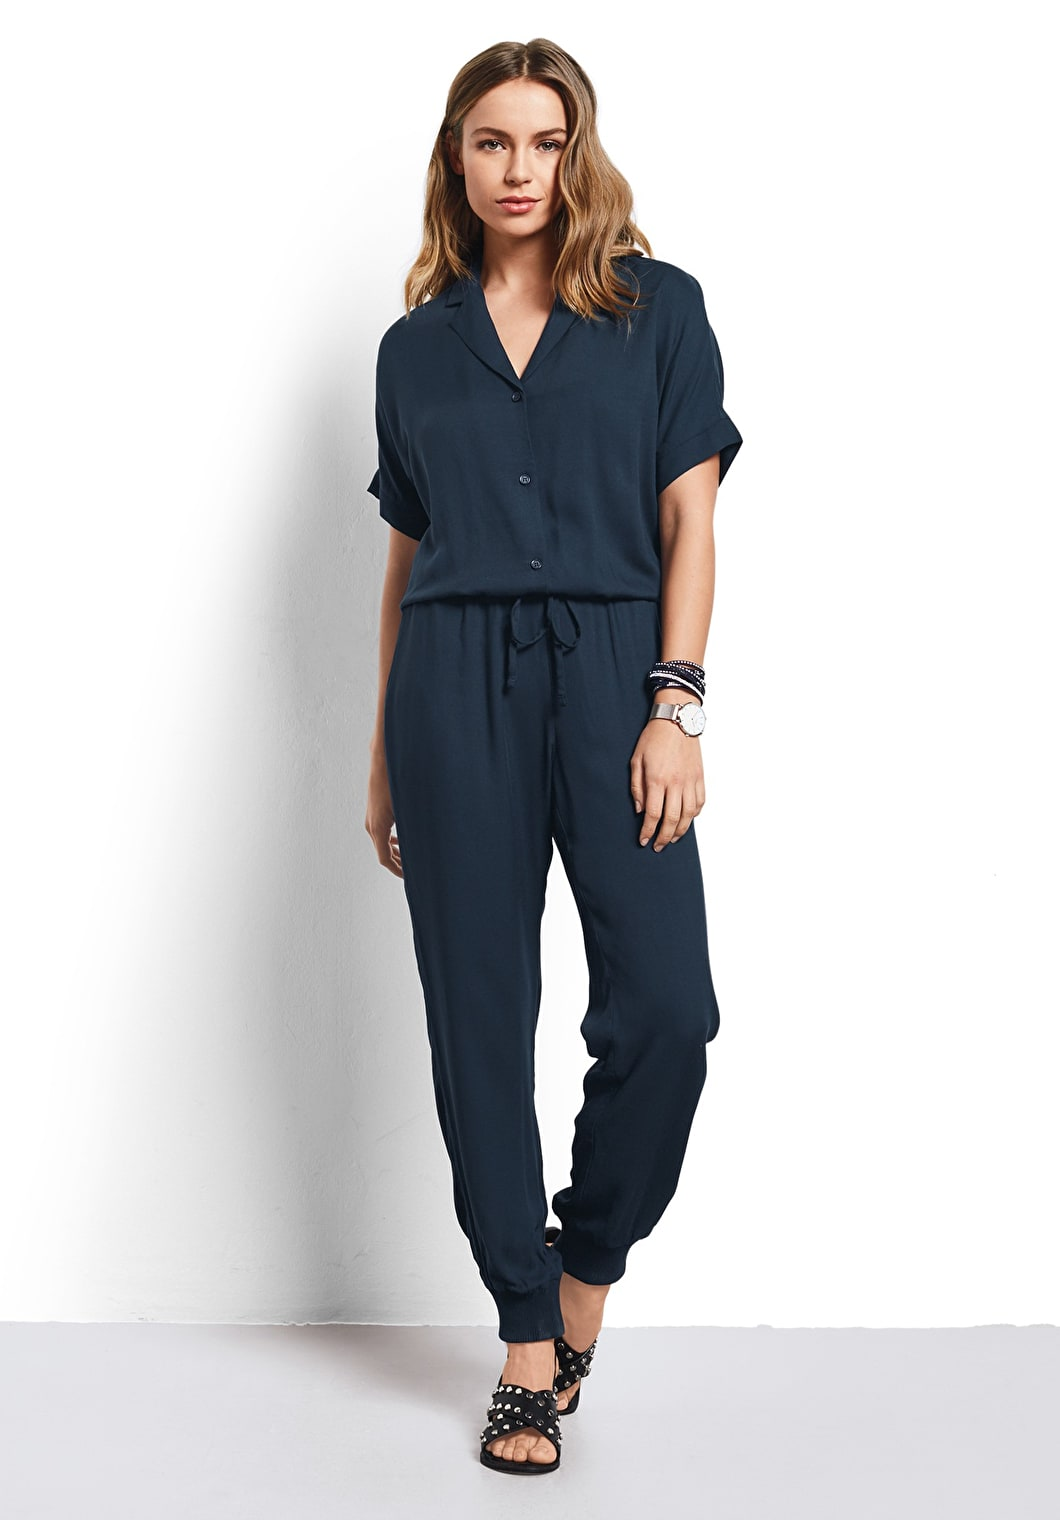 Model wears our lightweight jumpsuit with a waist cinching tie and button up shirt in Blueberry